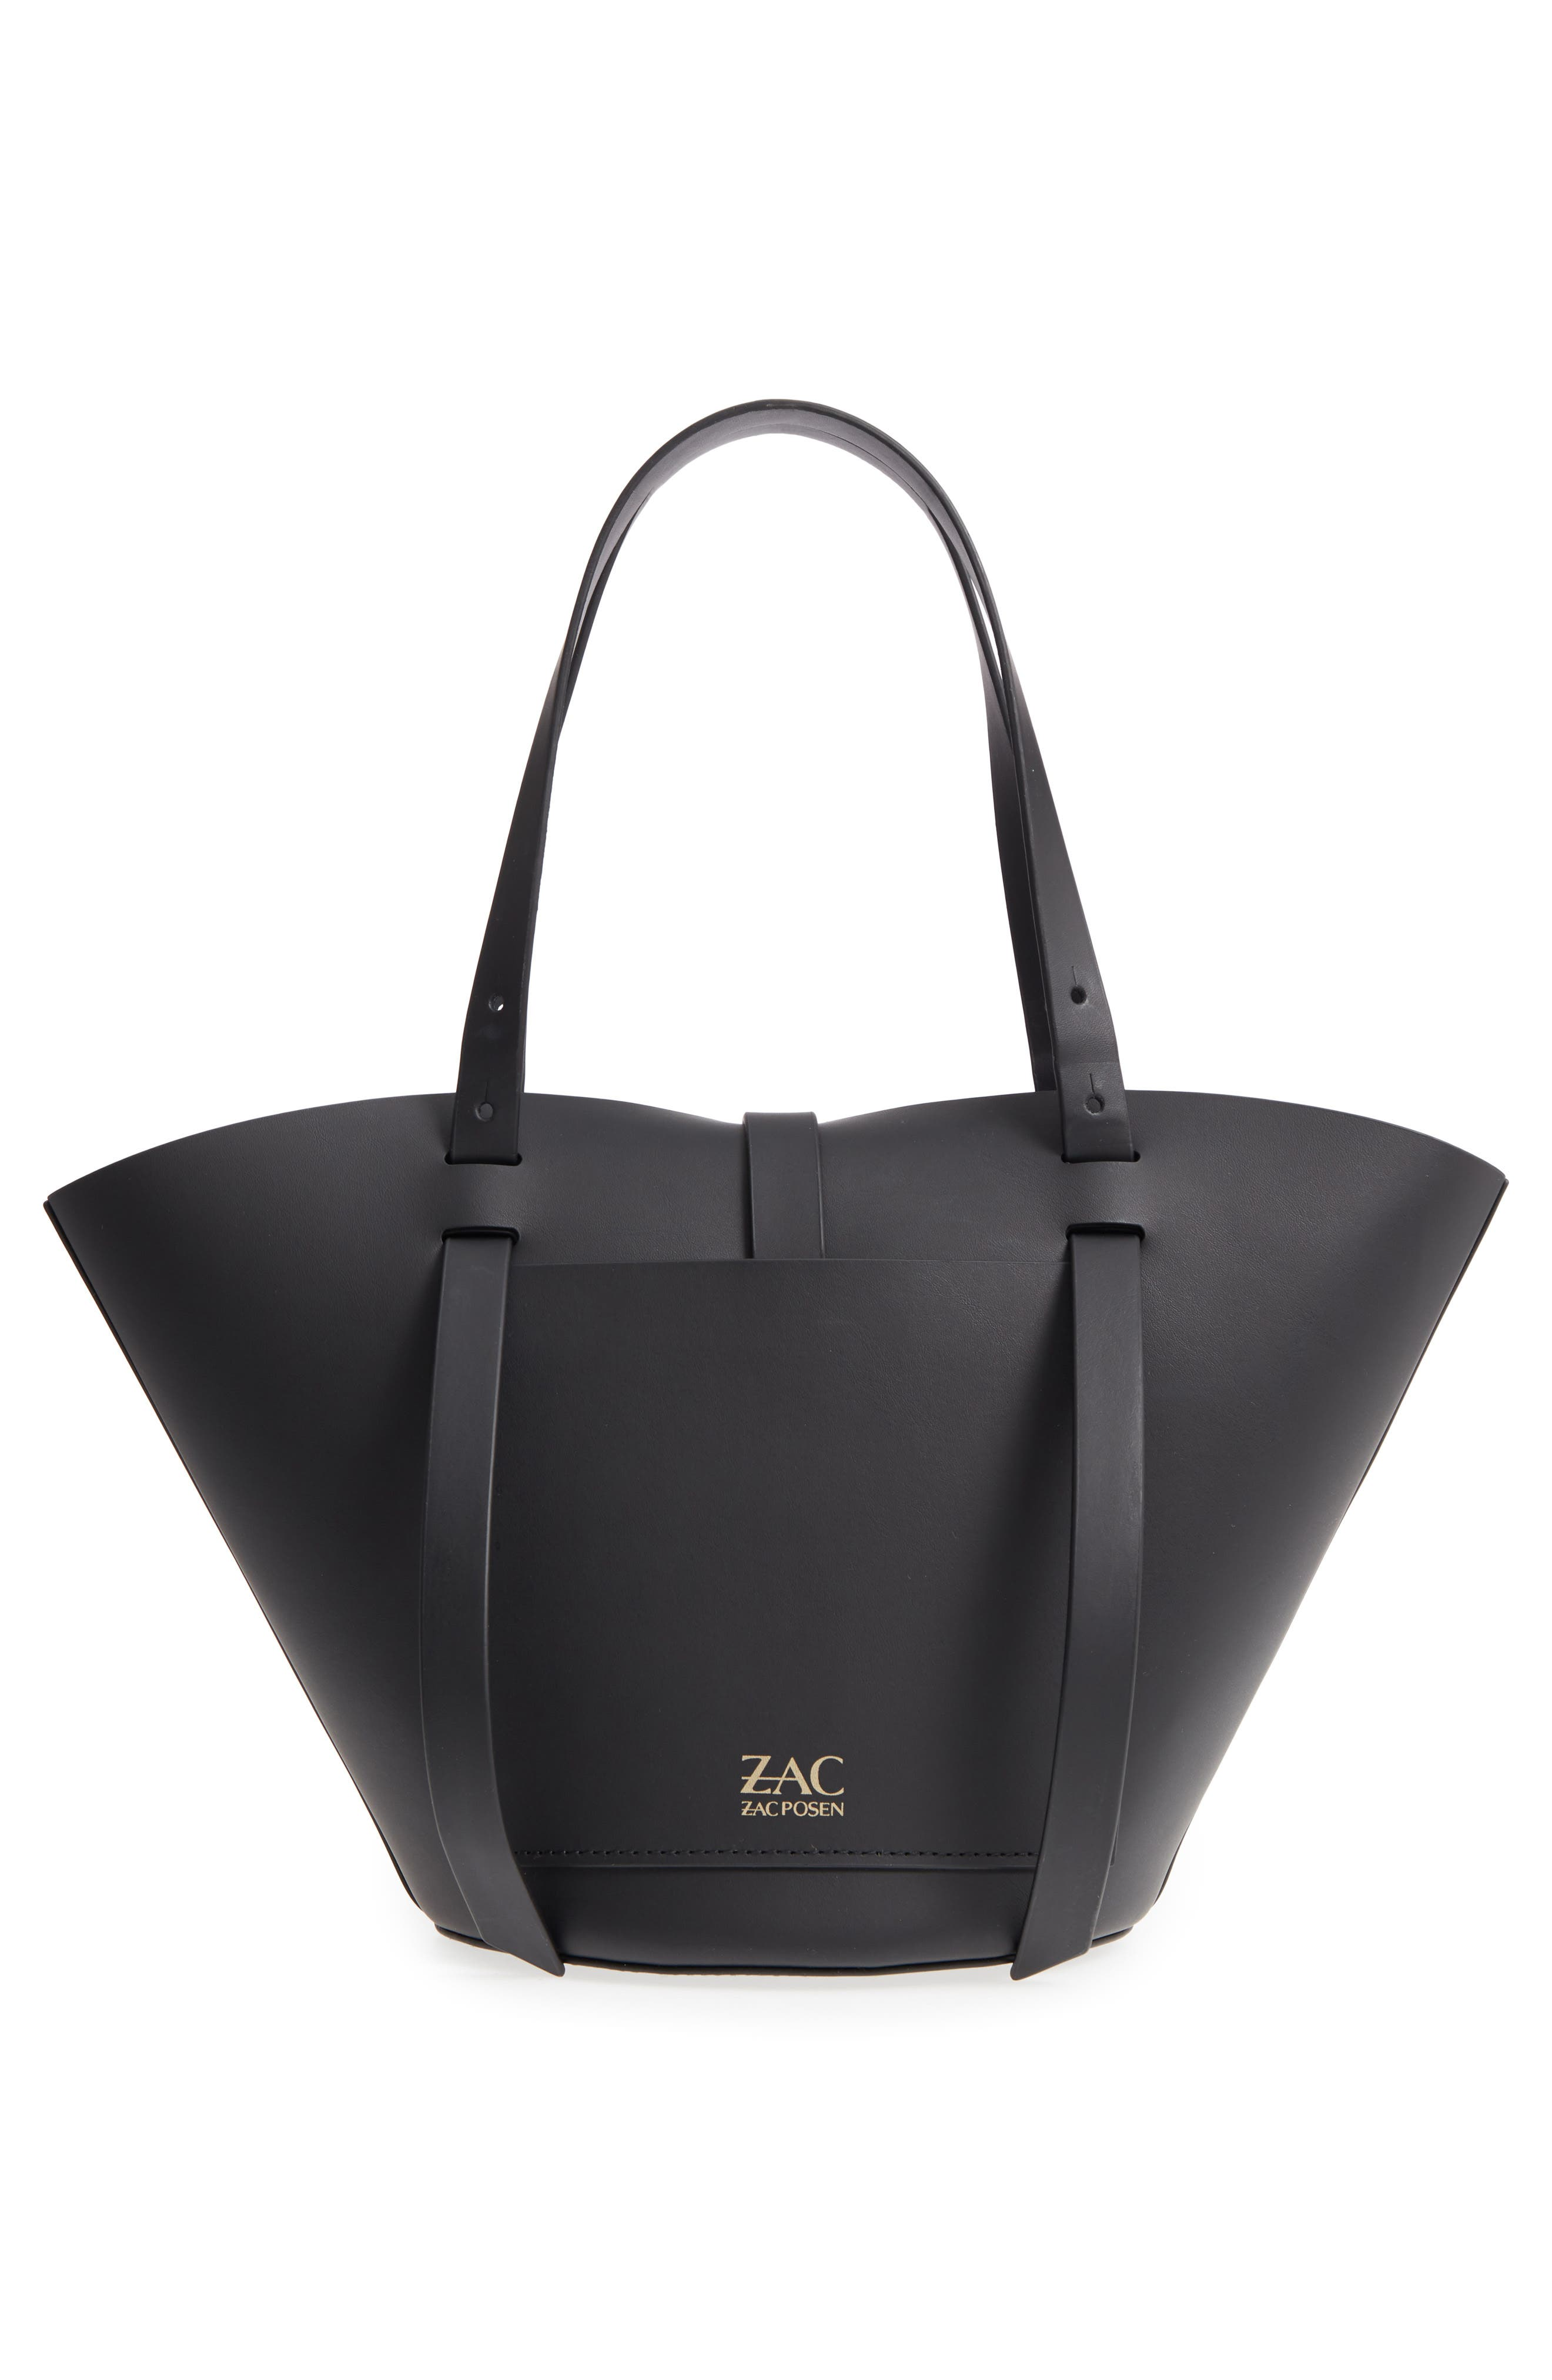 ZAC ZAC POSEN, Small Belay Leather Tote, Alternate thumbnail 3, color, 001